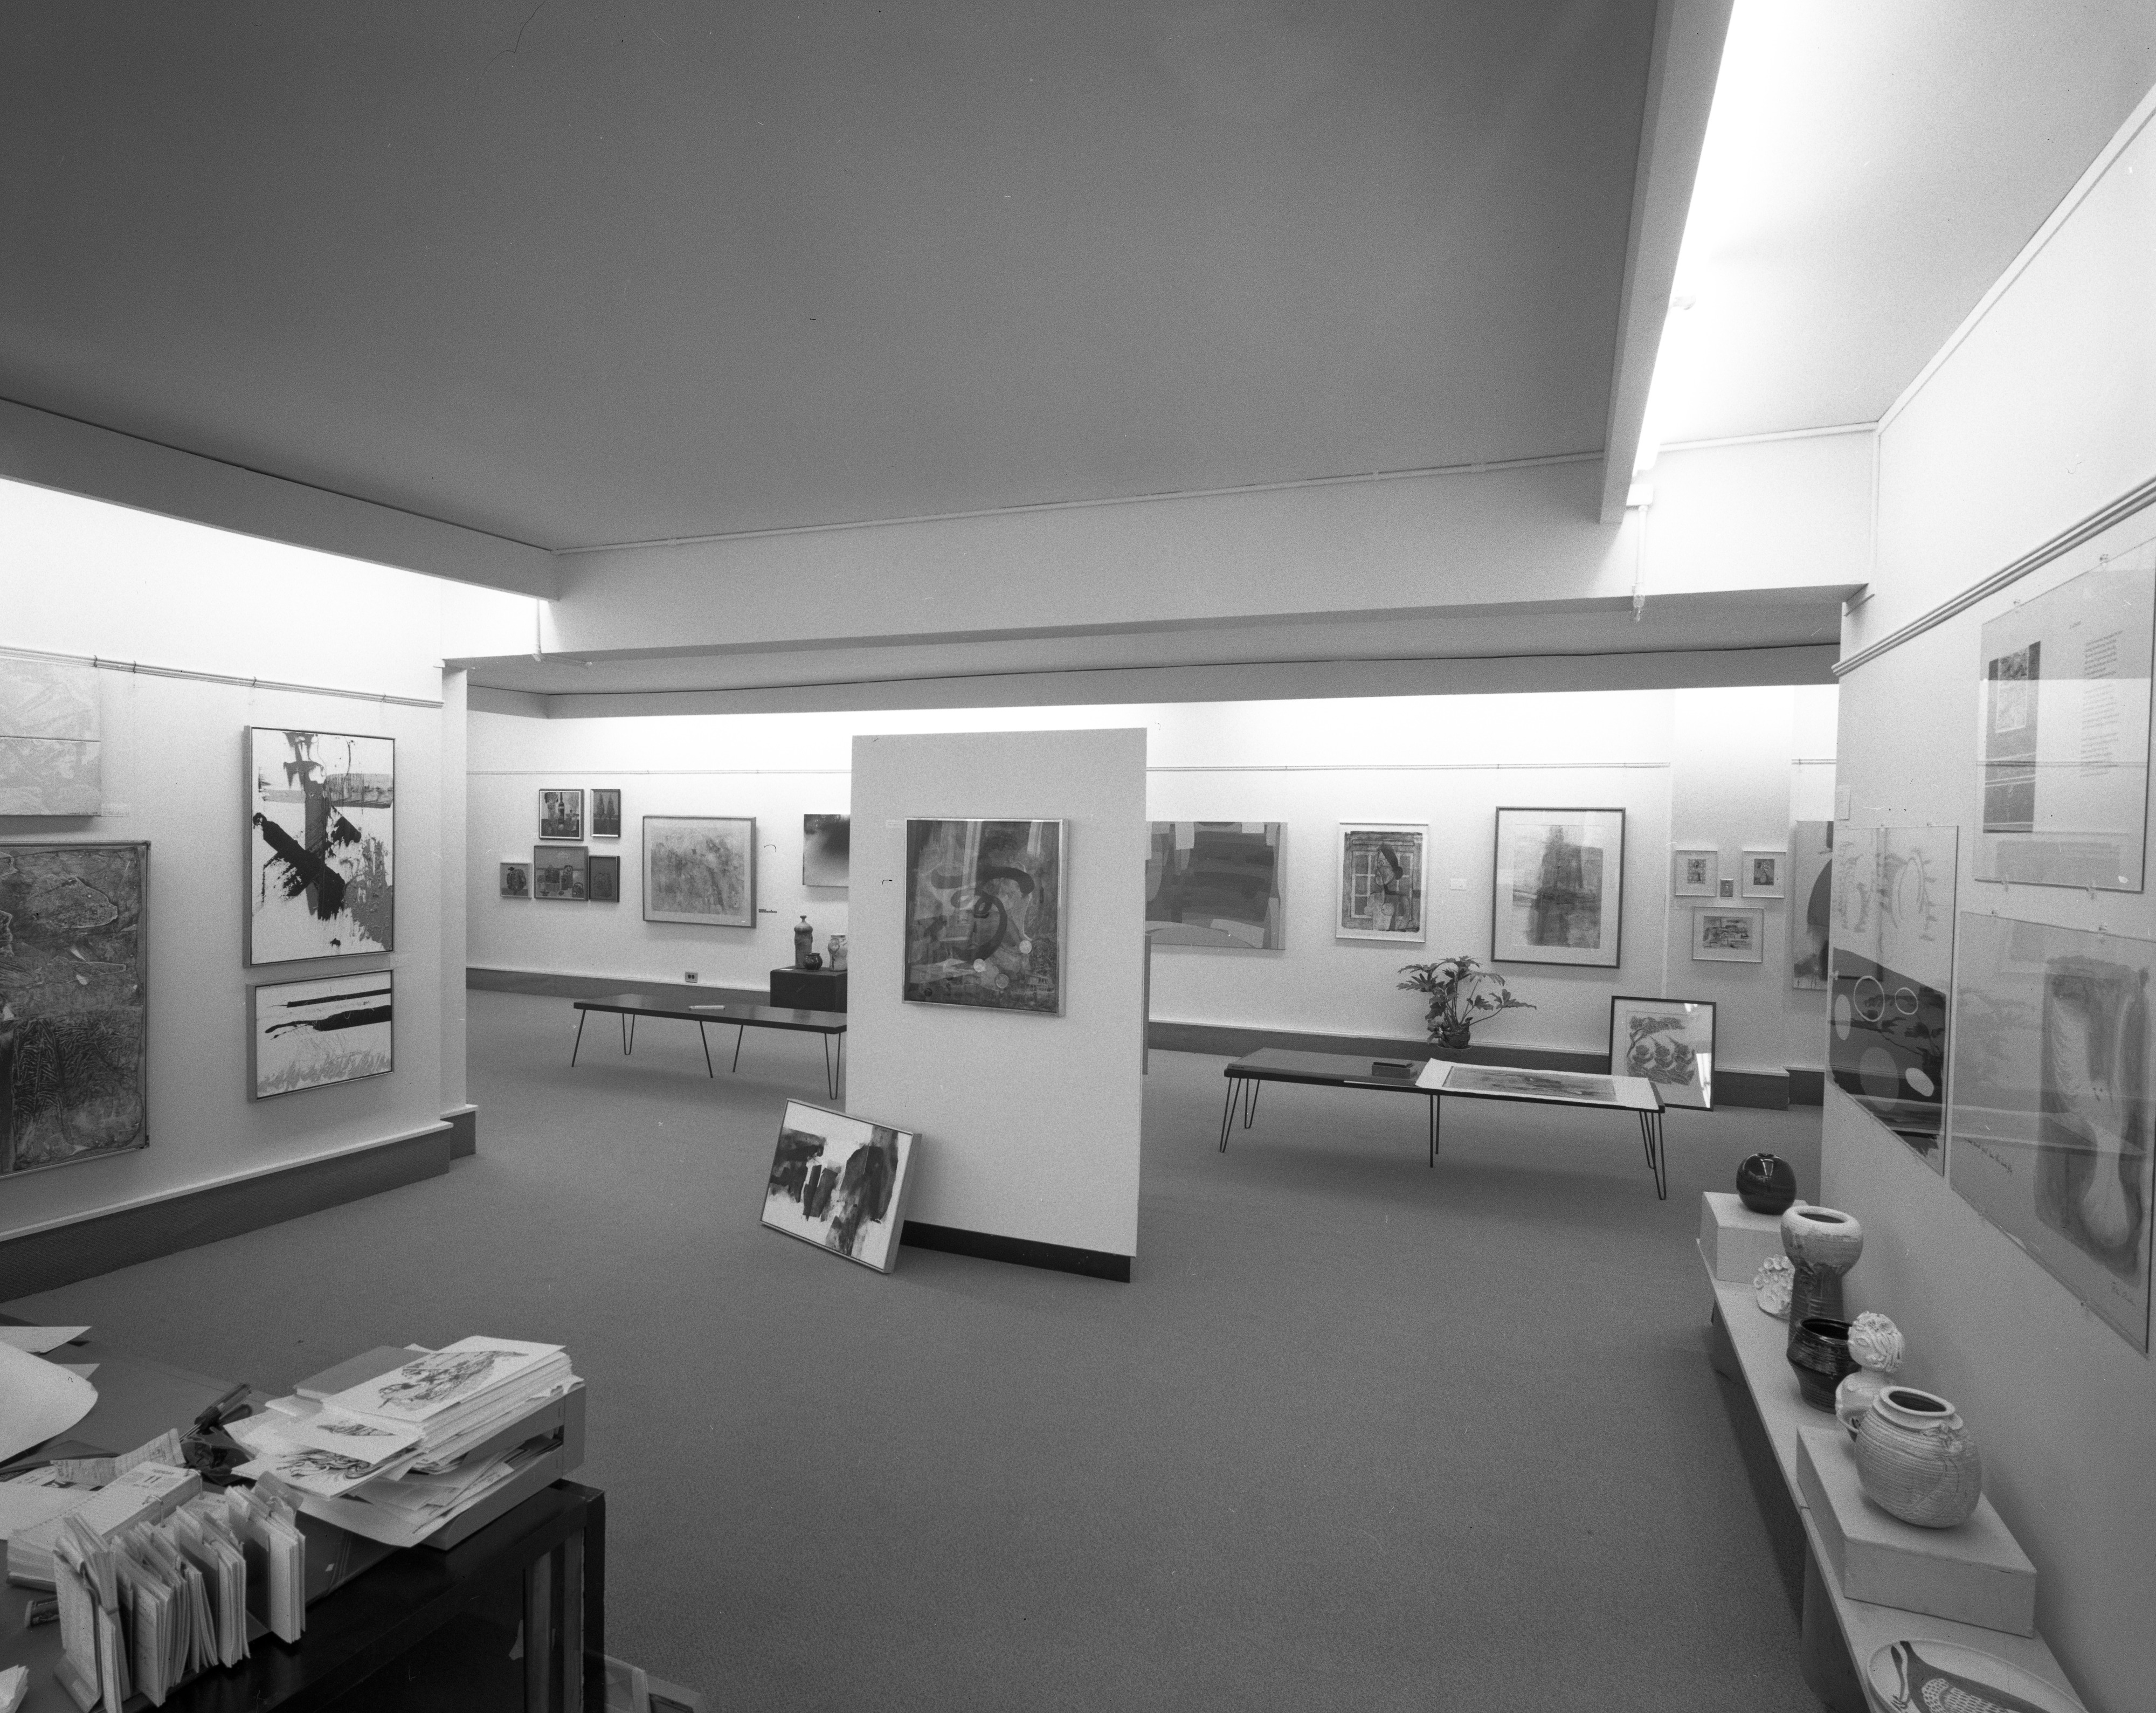 Forsythe Gallery In Nickels Arcade Completes Remodeling Project, November 1969 image